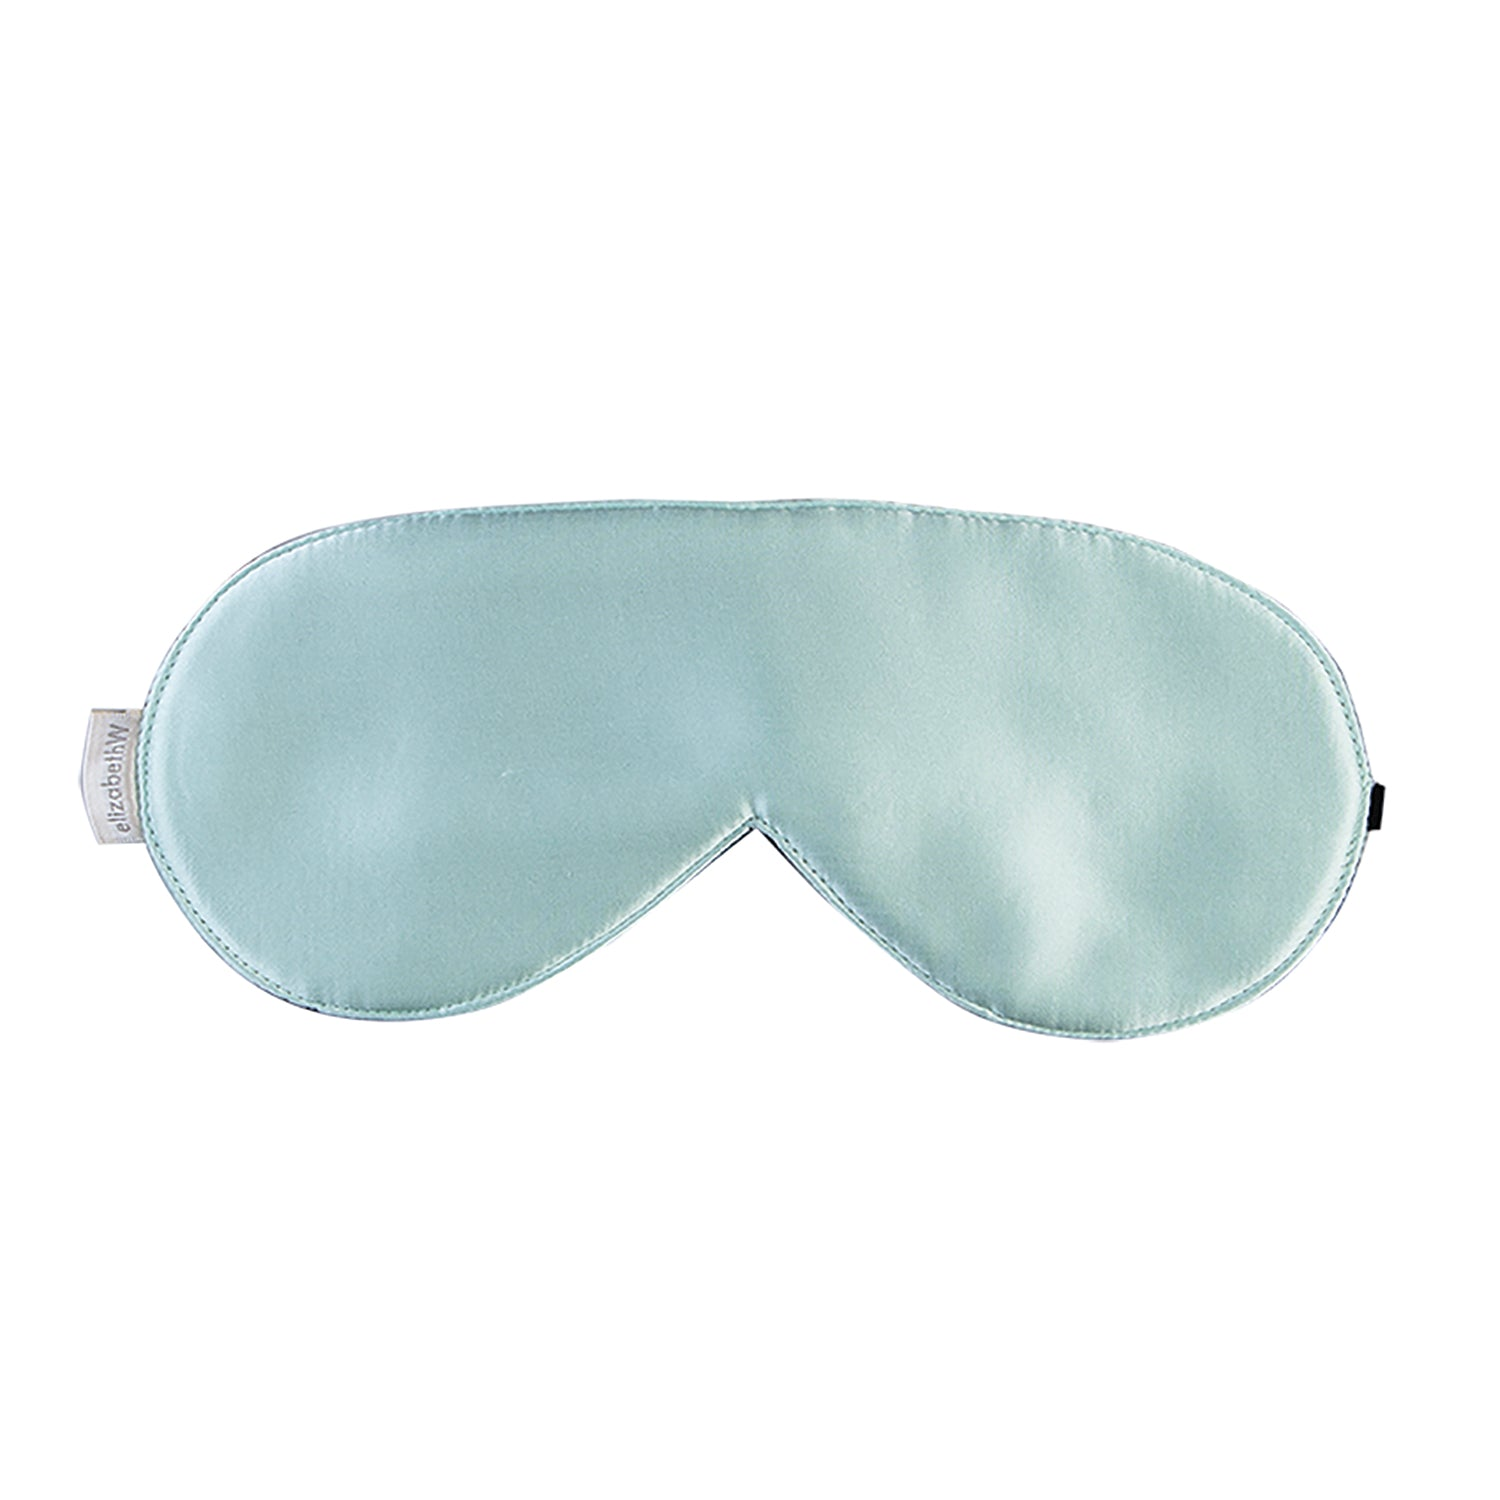 Sea Foam Sleep Mask